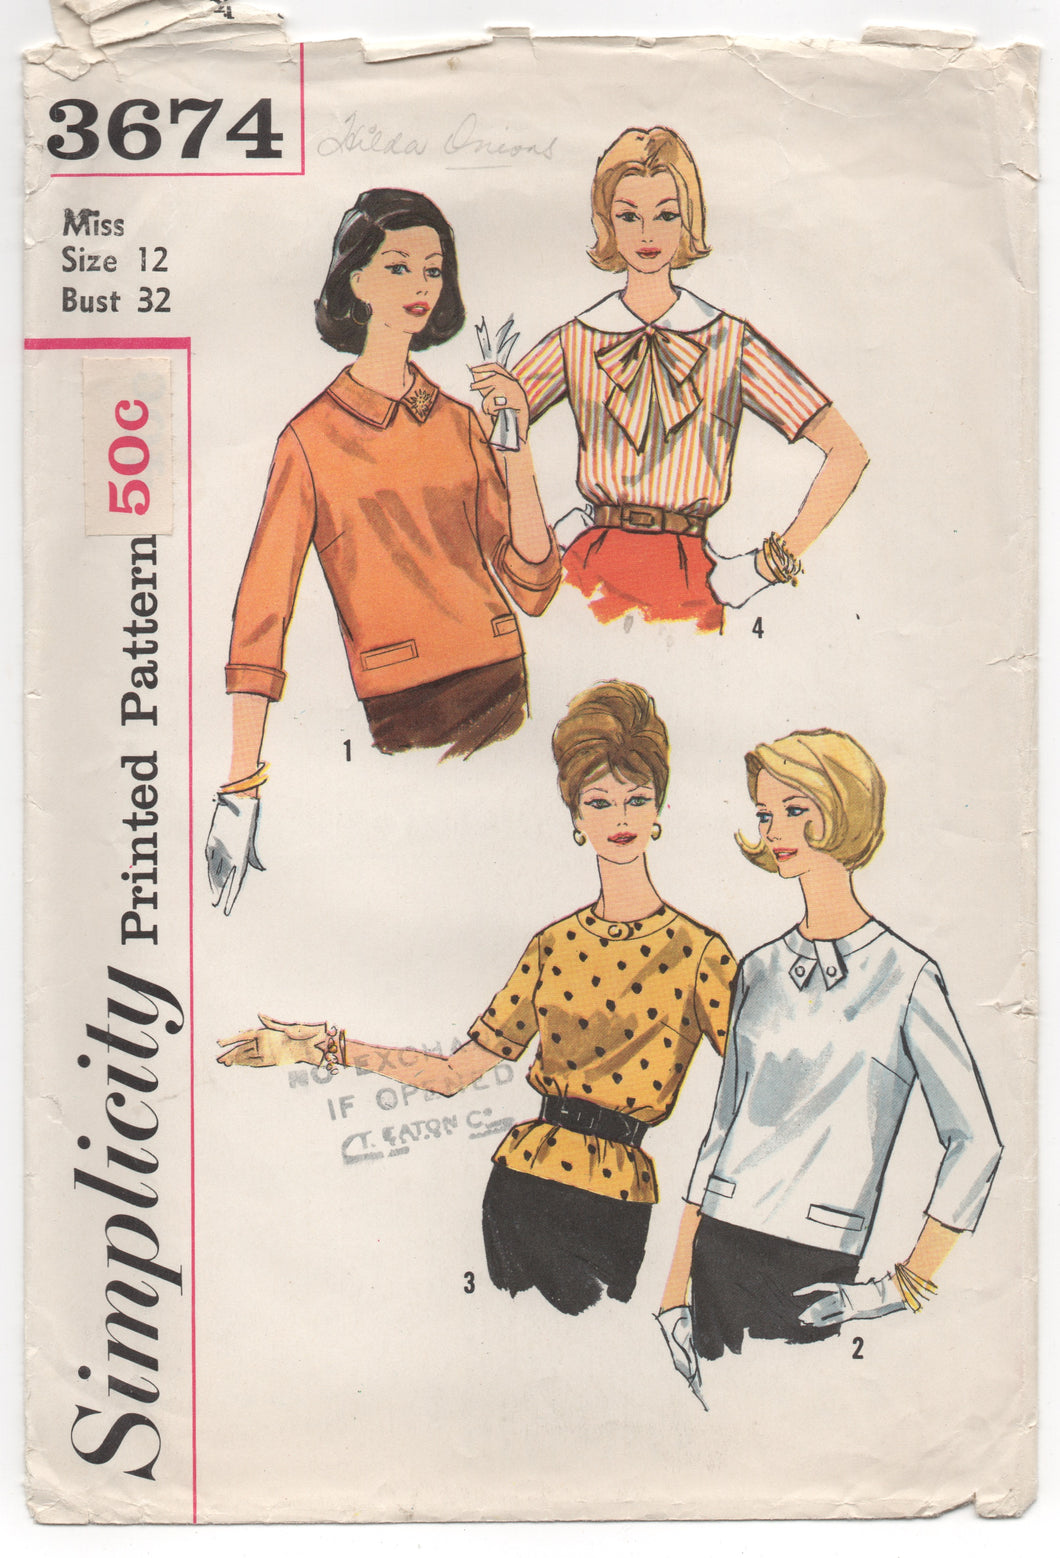 1960's Simplicity Blouse in 4 Styles, Bow, and Tab Accents - Bust 32